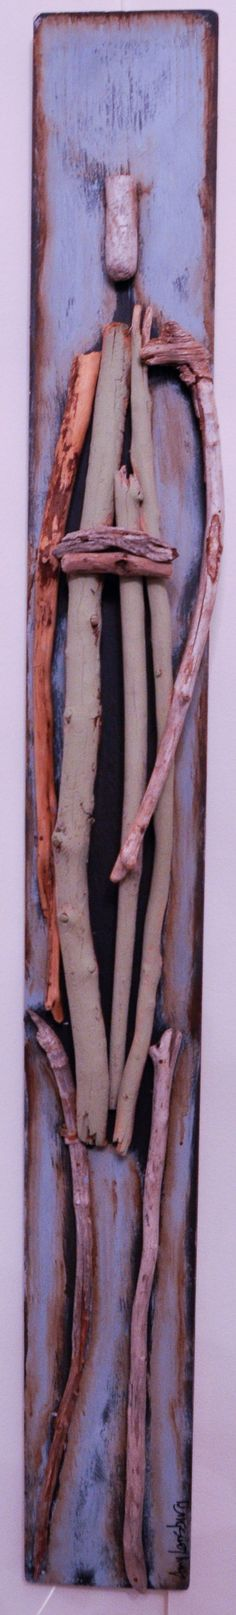 Figures made from driftwood by Amy Lansburg.